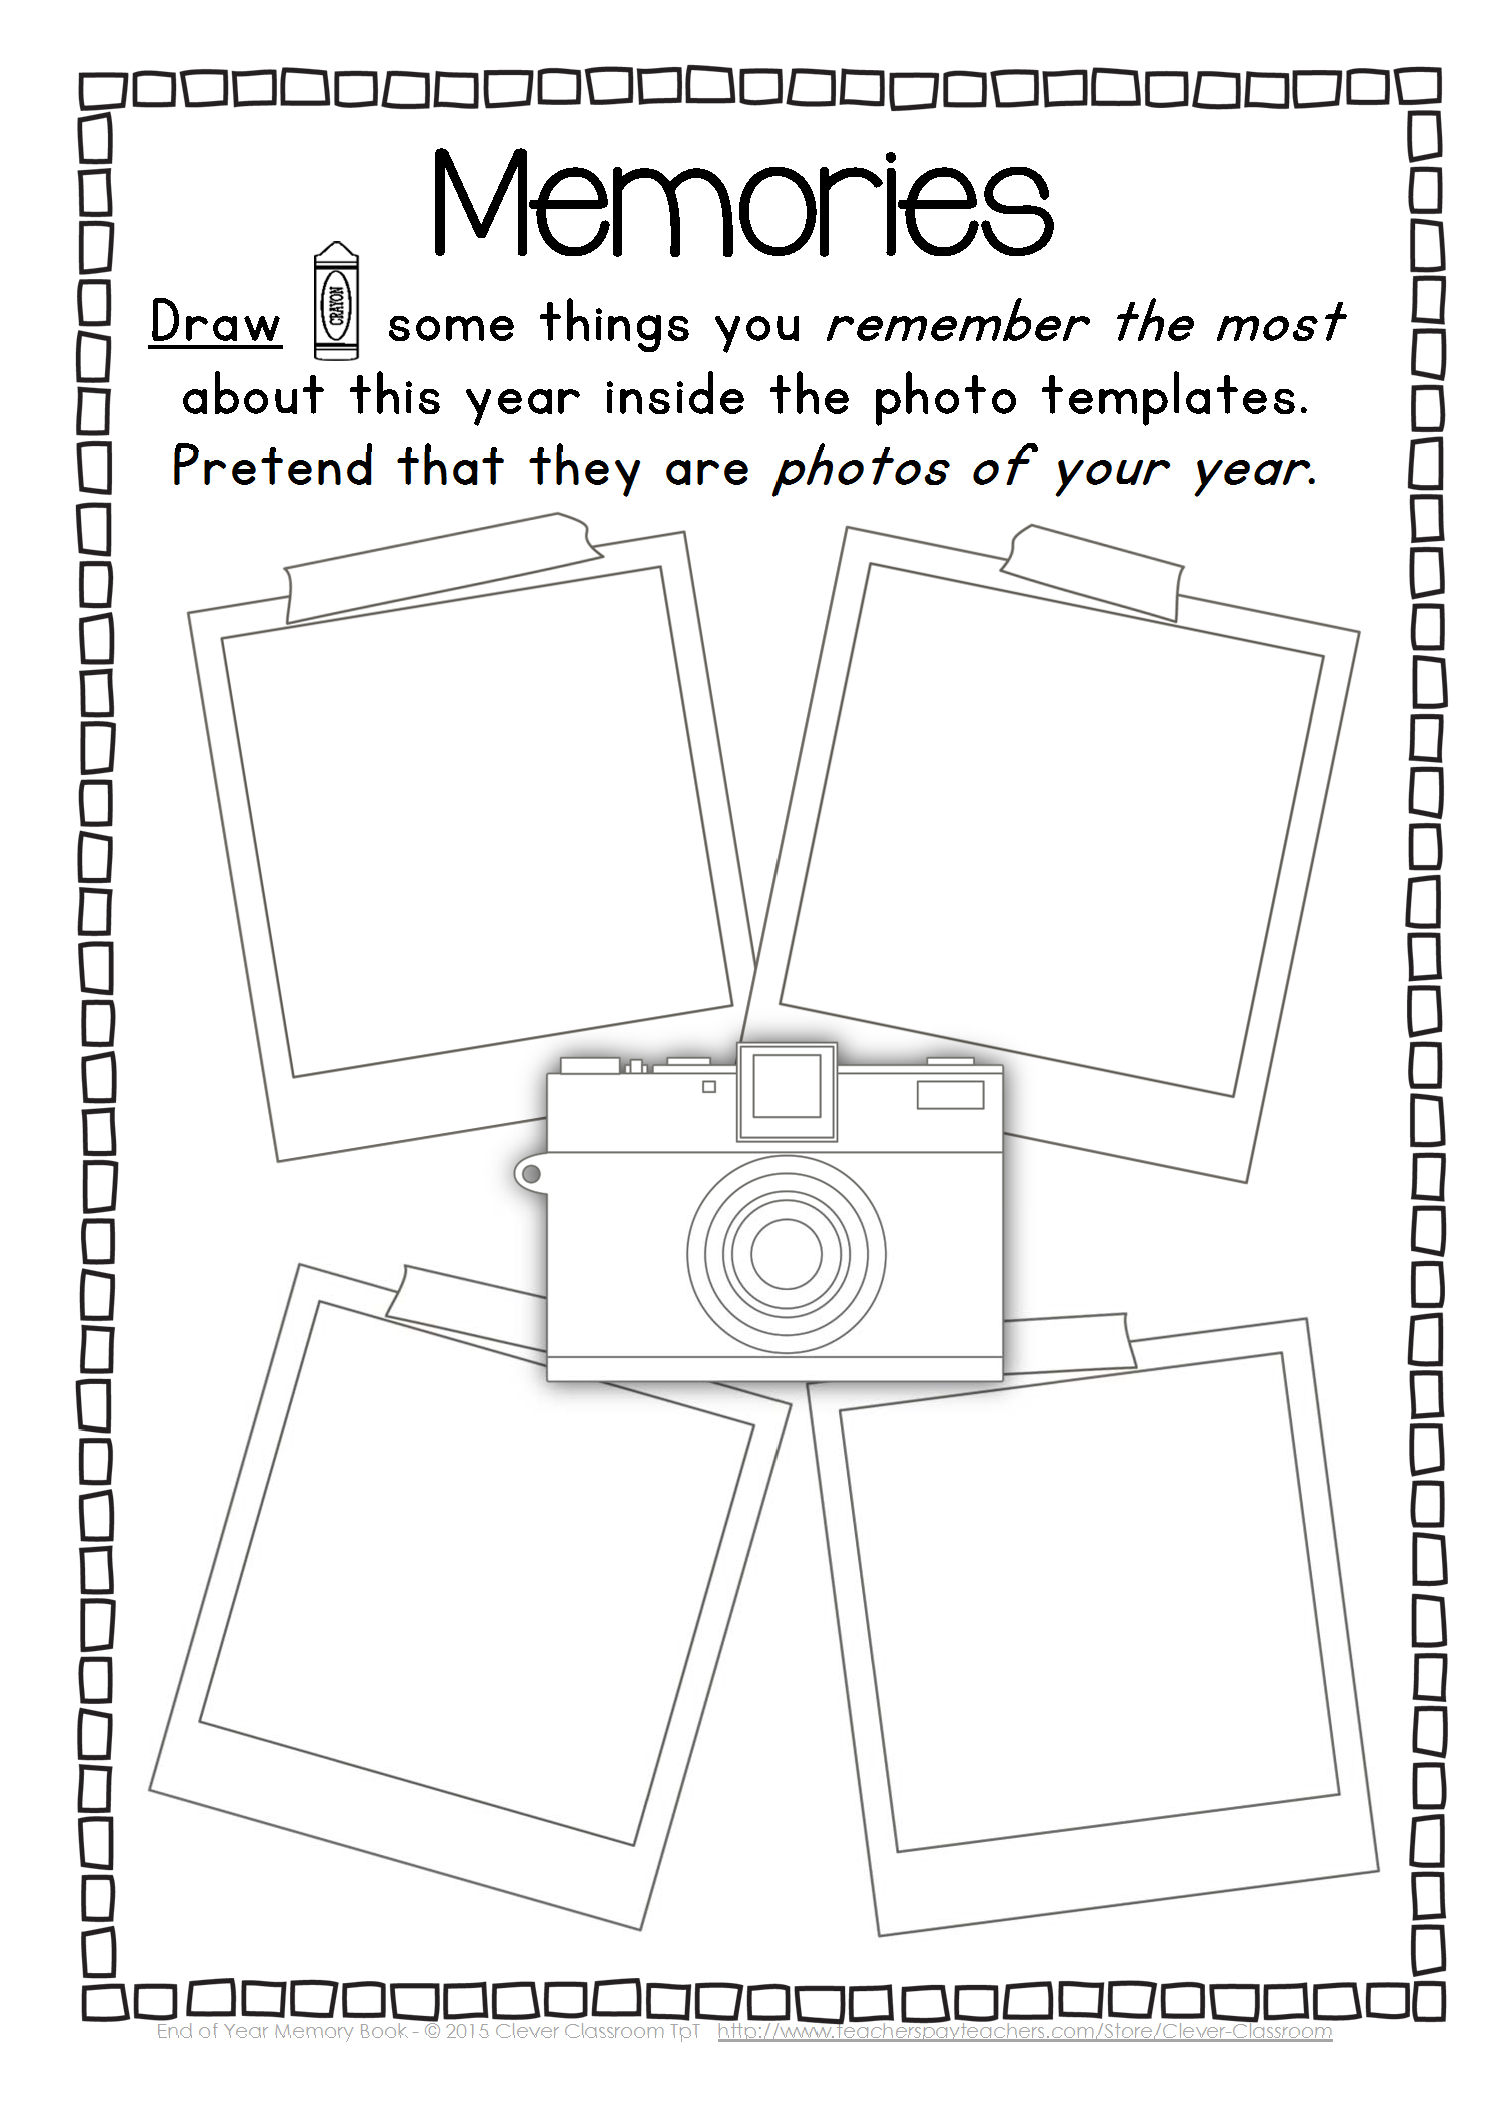 End of year memory book for elementary printable! By pinkpearls.